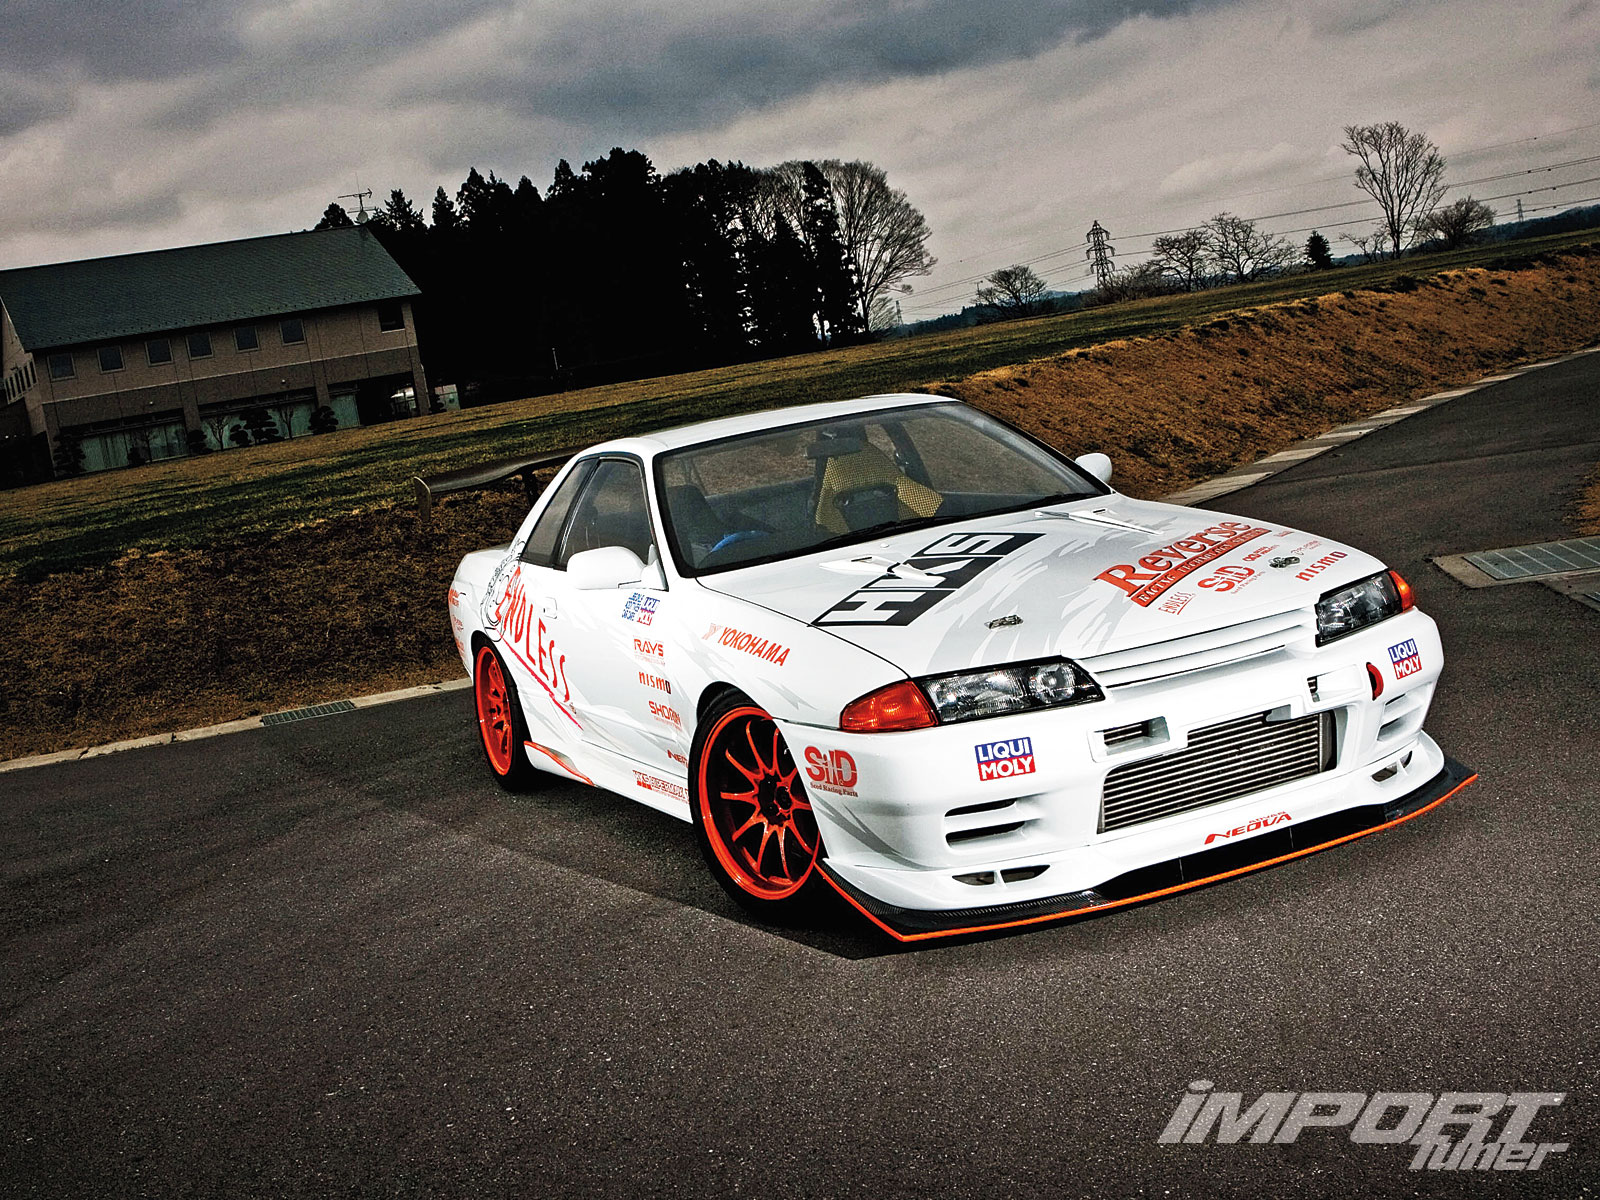 Top 10 Nissan Skyline GT-R Features - Import Tuner